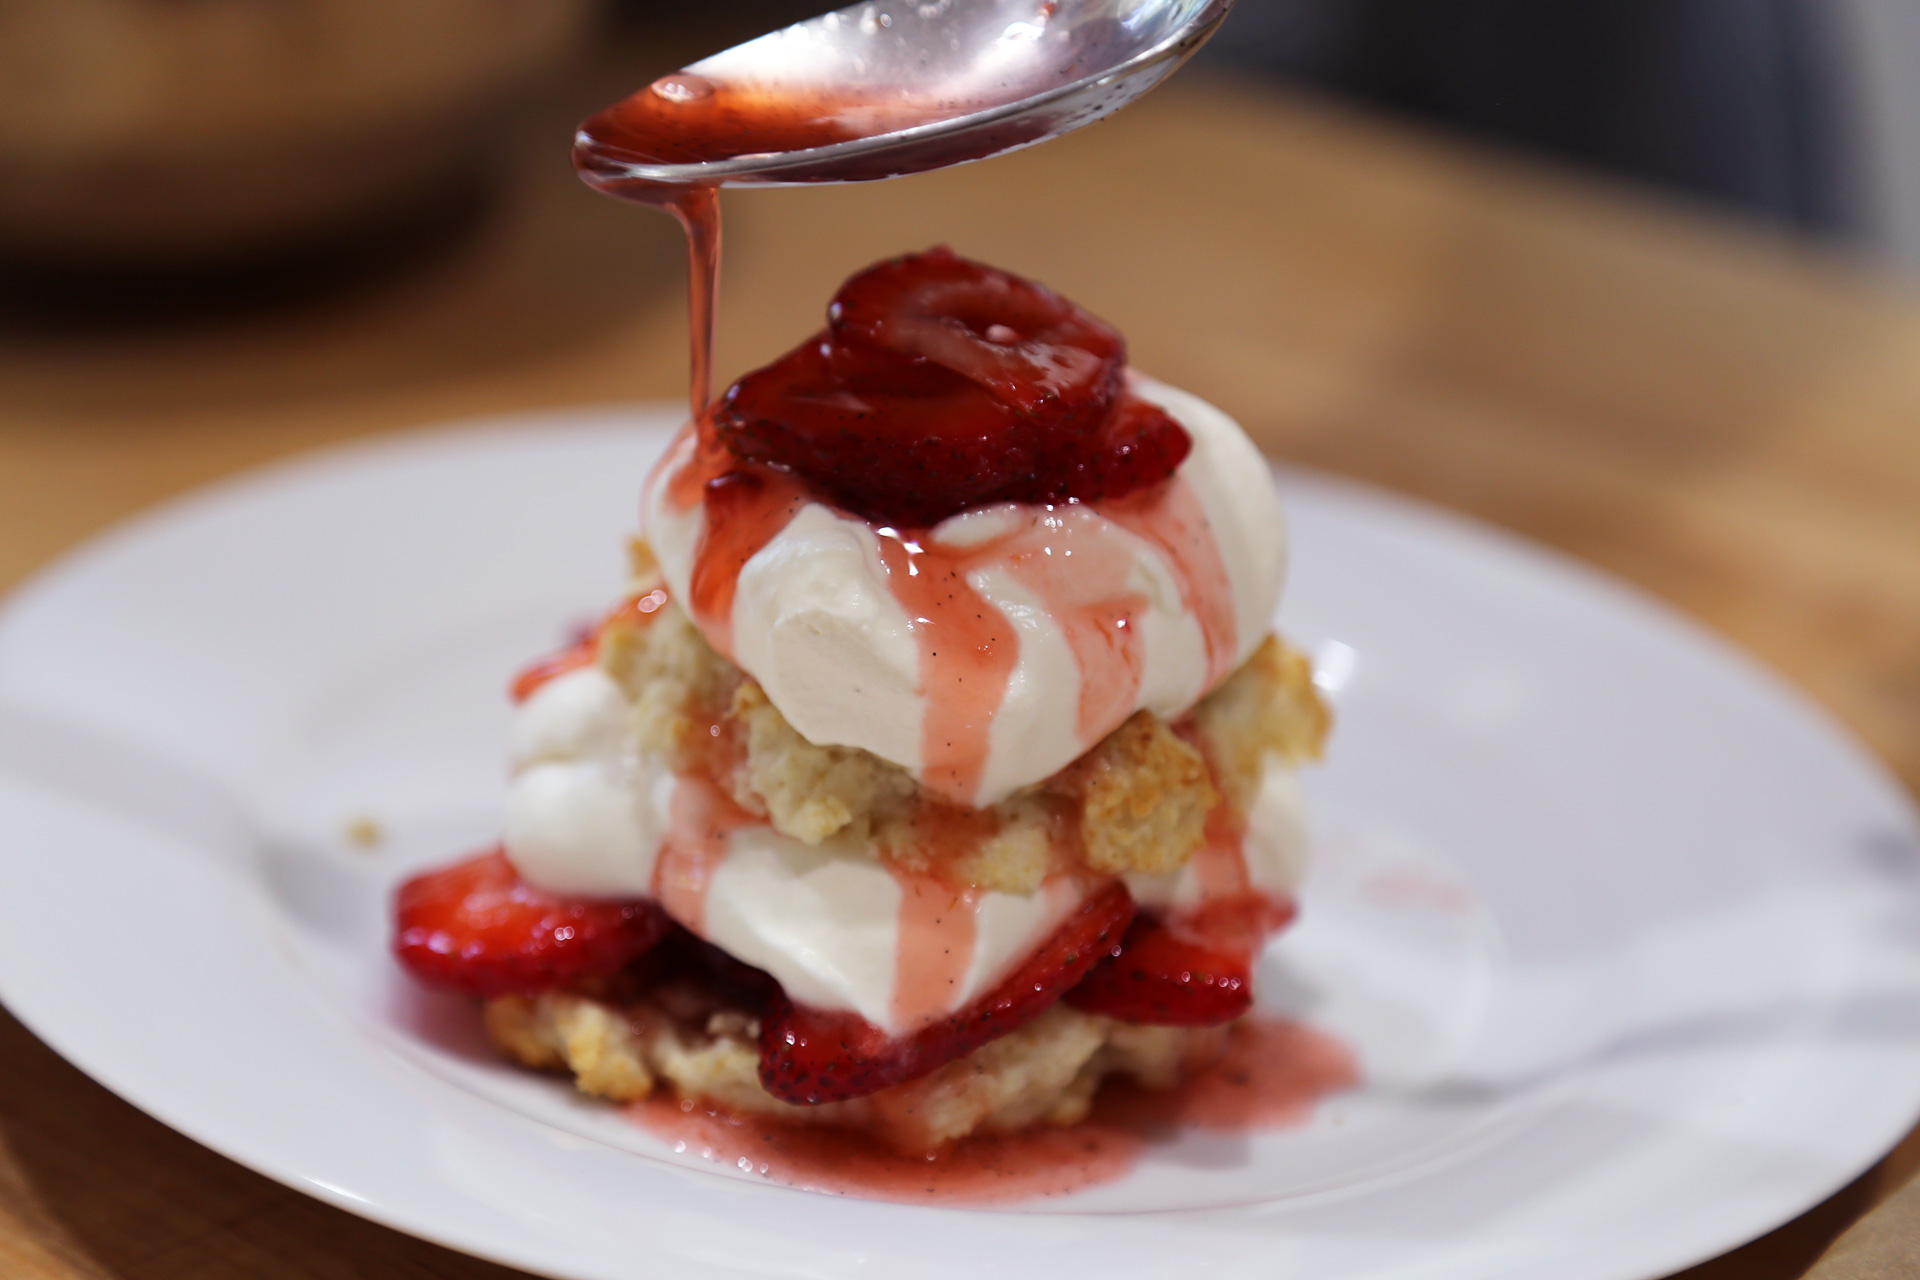 Classic Strawberry Shortcake